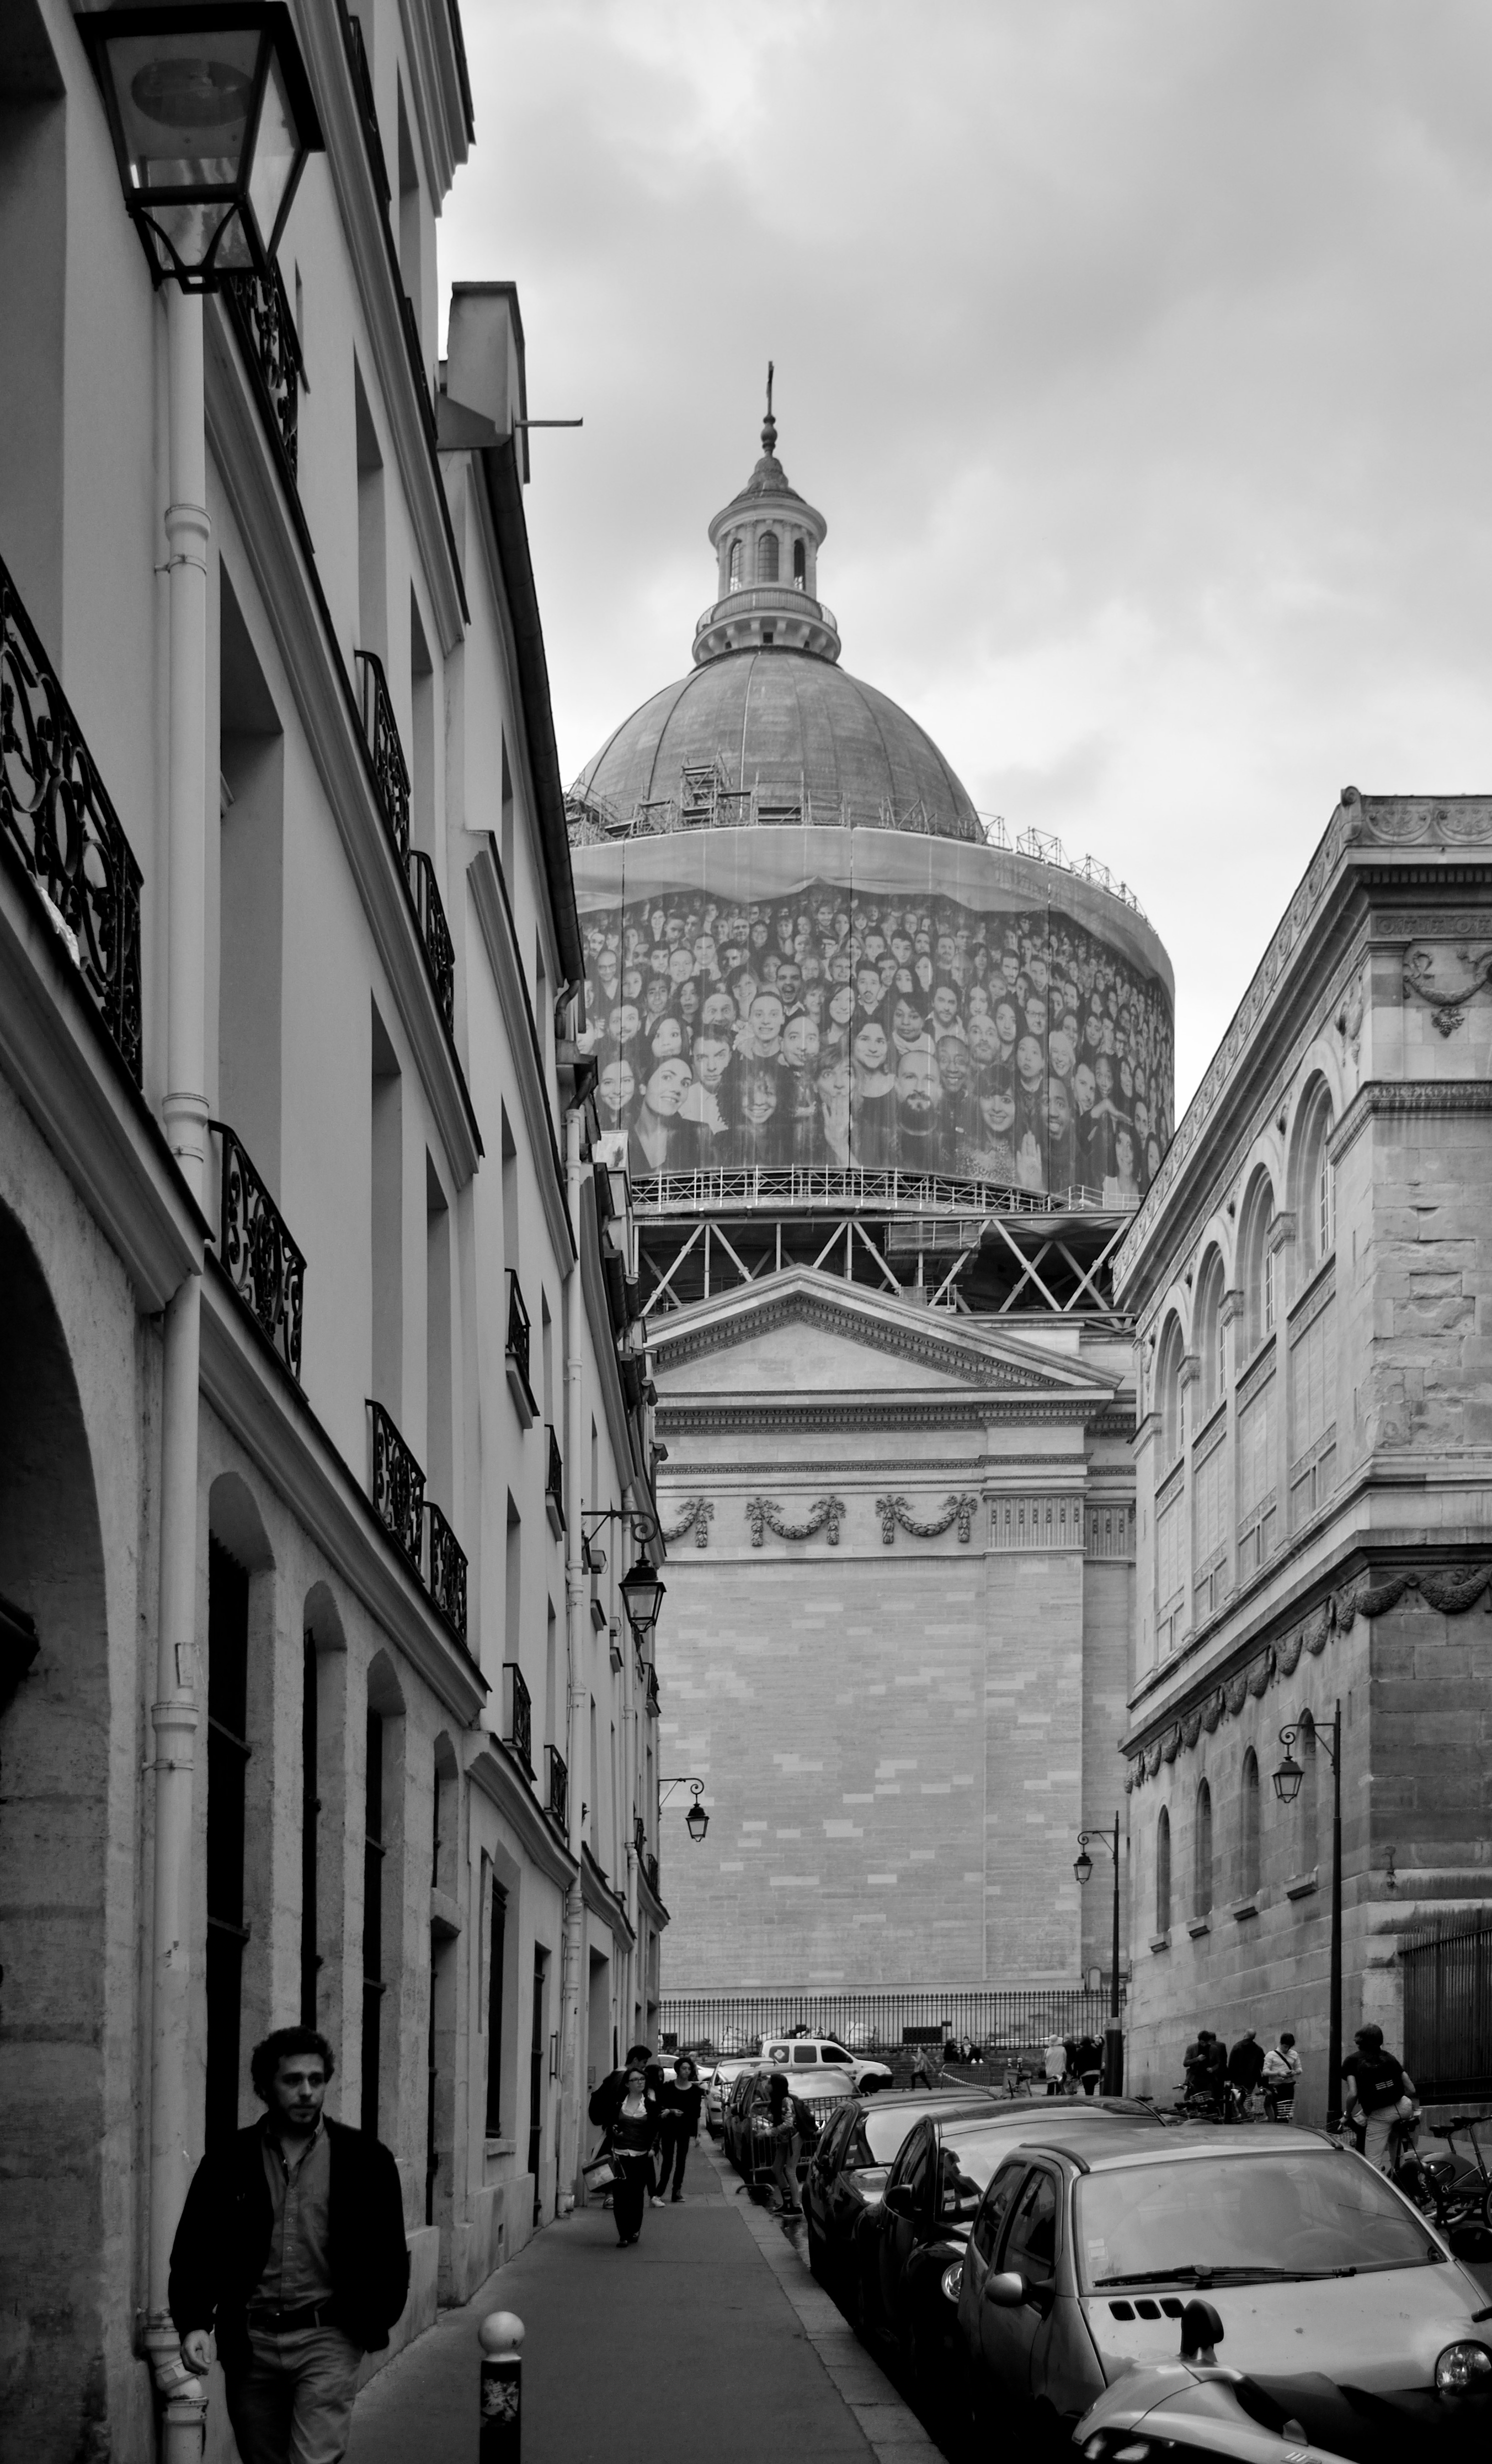 File:Pantheon from Rue Valette, Paris 26 May 2015.jpg - Wikimedia ...